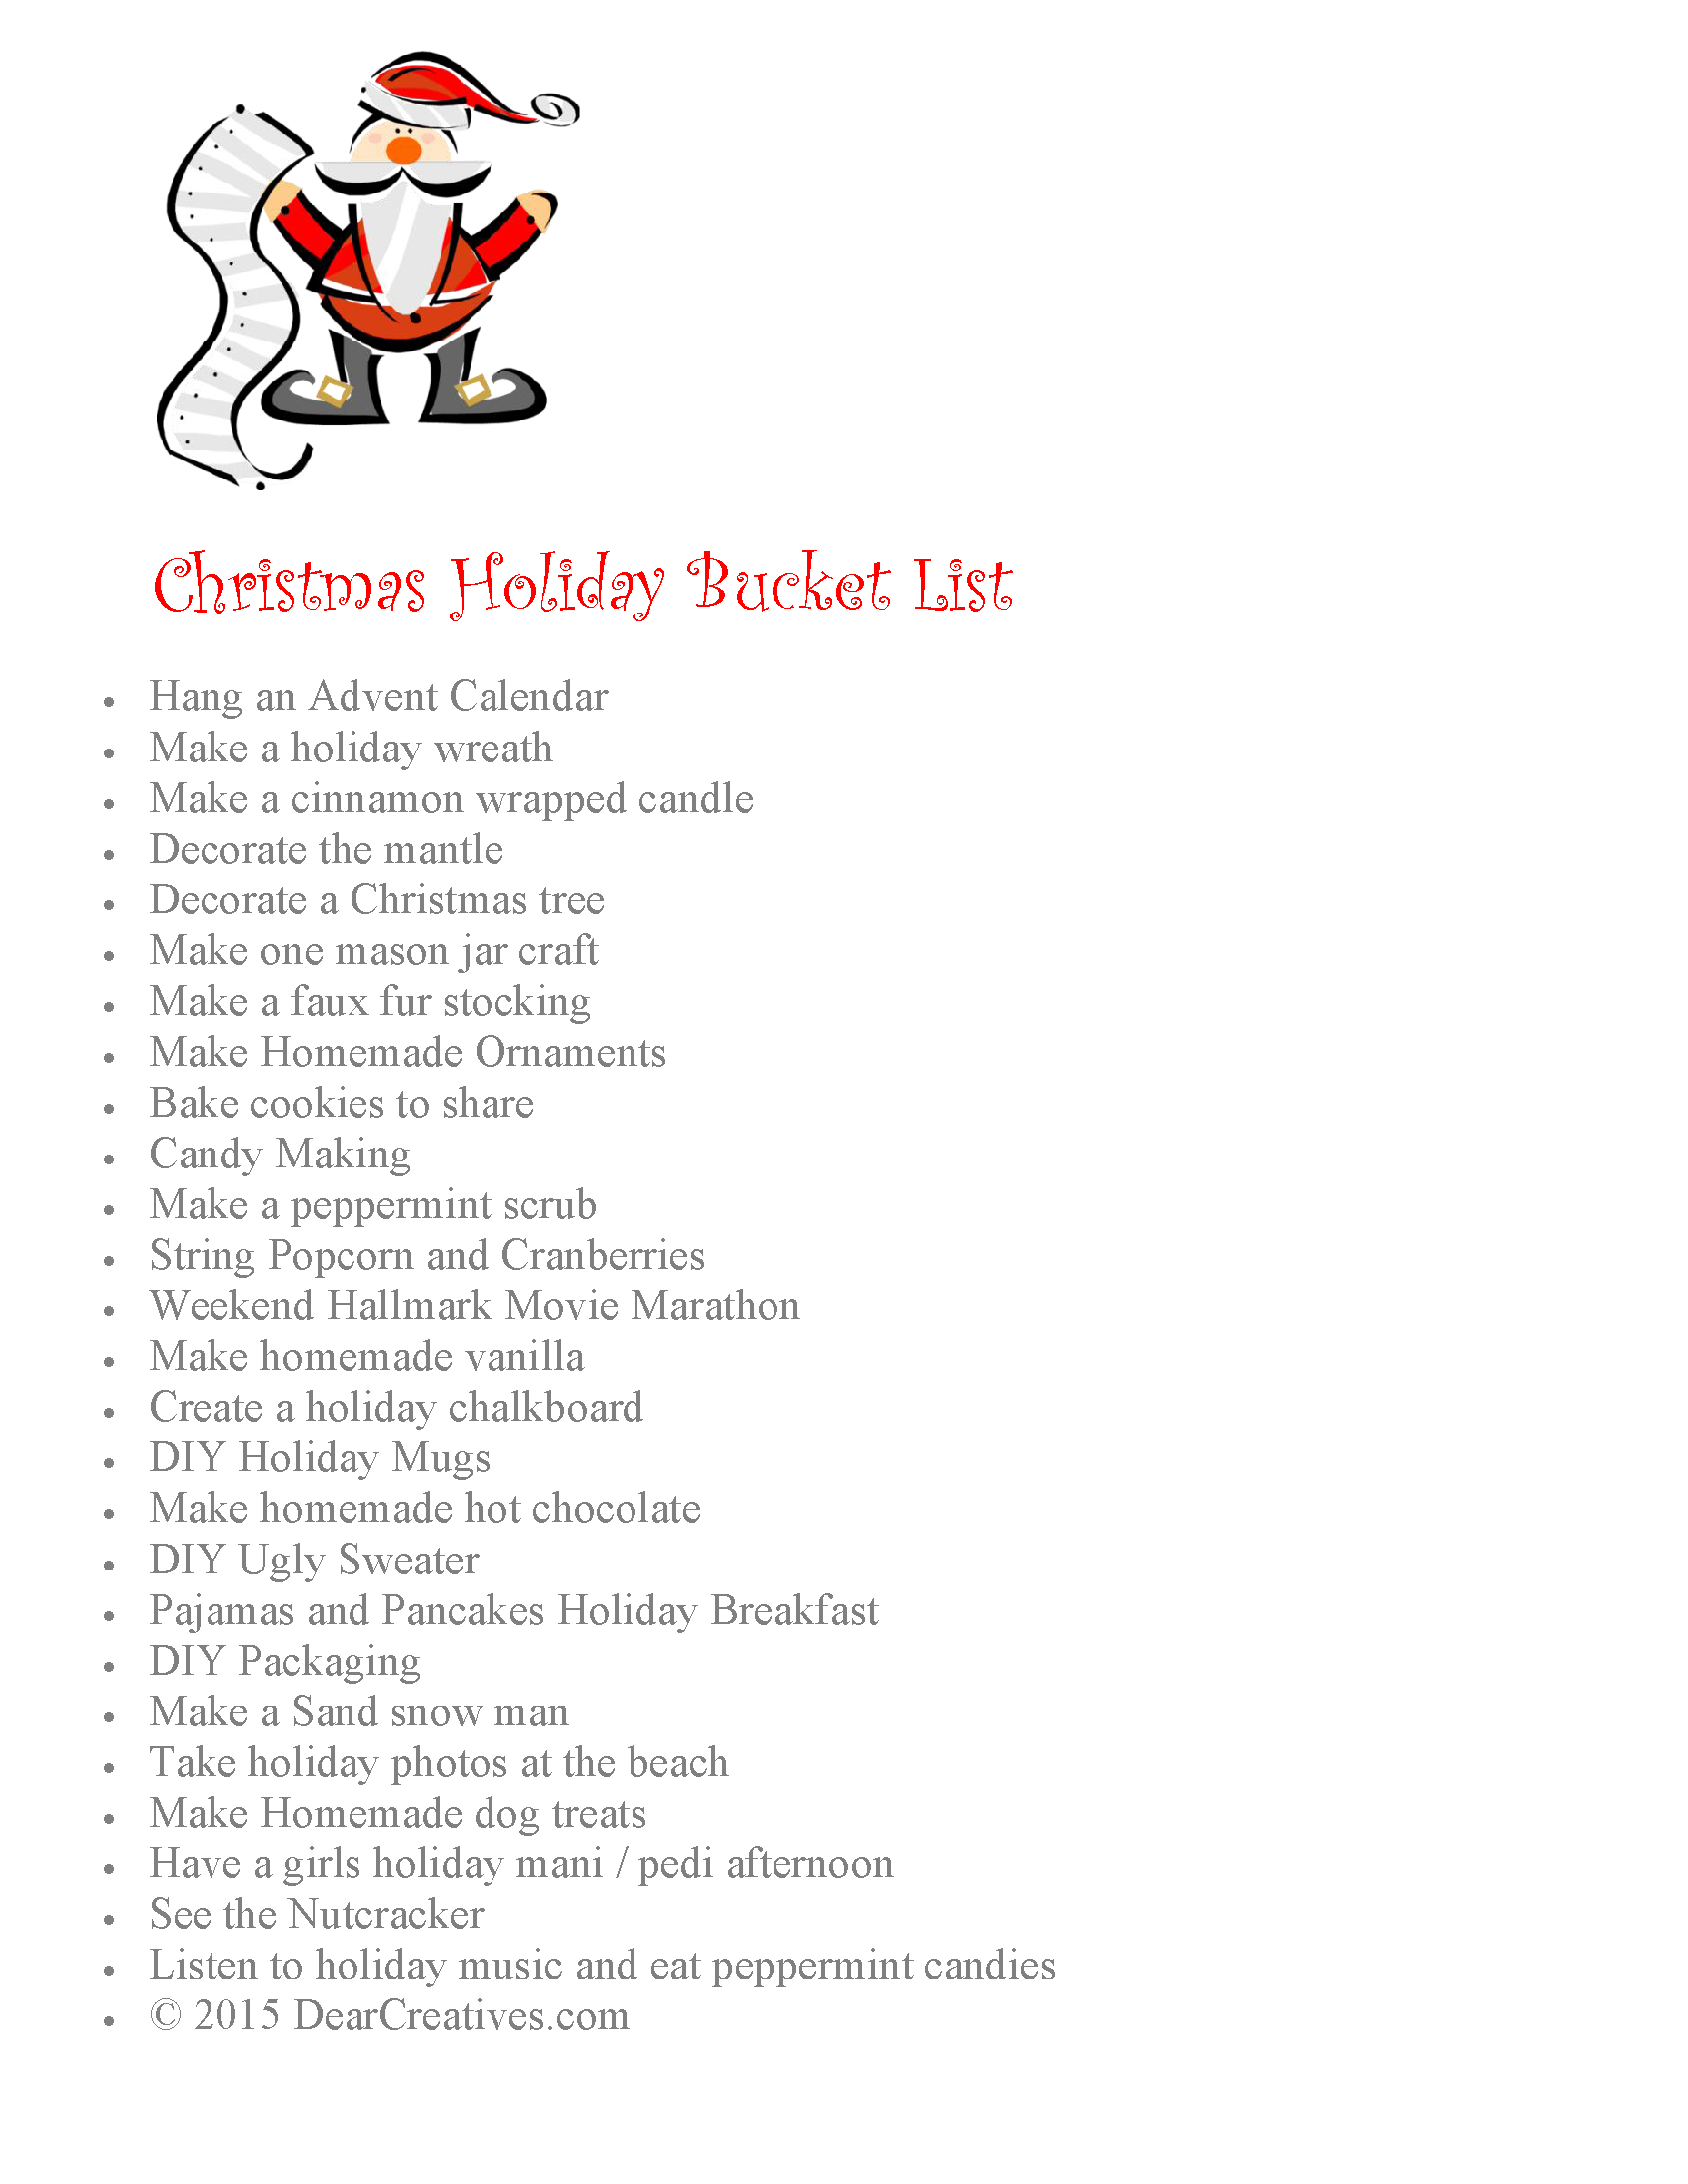 Christmas Holiday Bucket List (Free Printable)